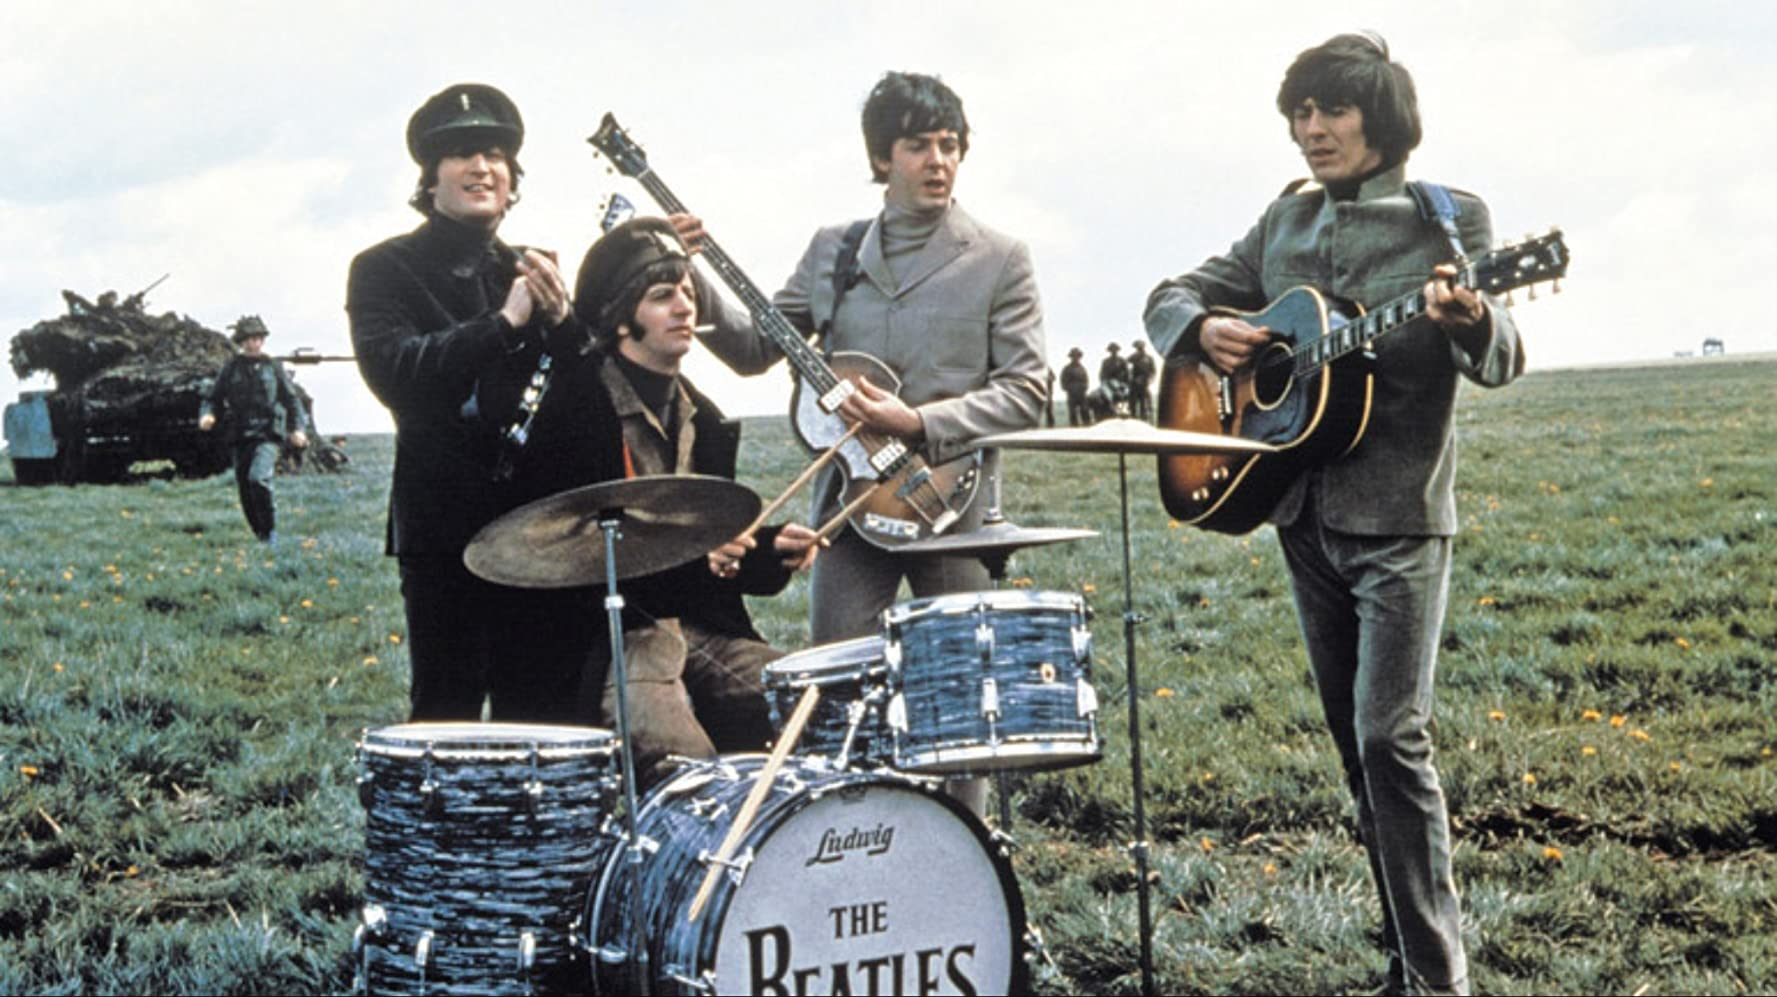 Paul McCartney, John Lennon, George Harrison, Ringo Starr, and The Beatles in Help! (1965)